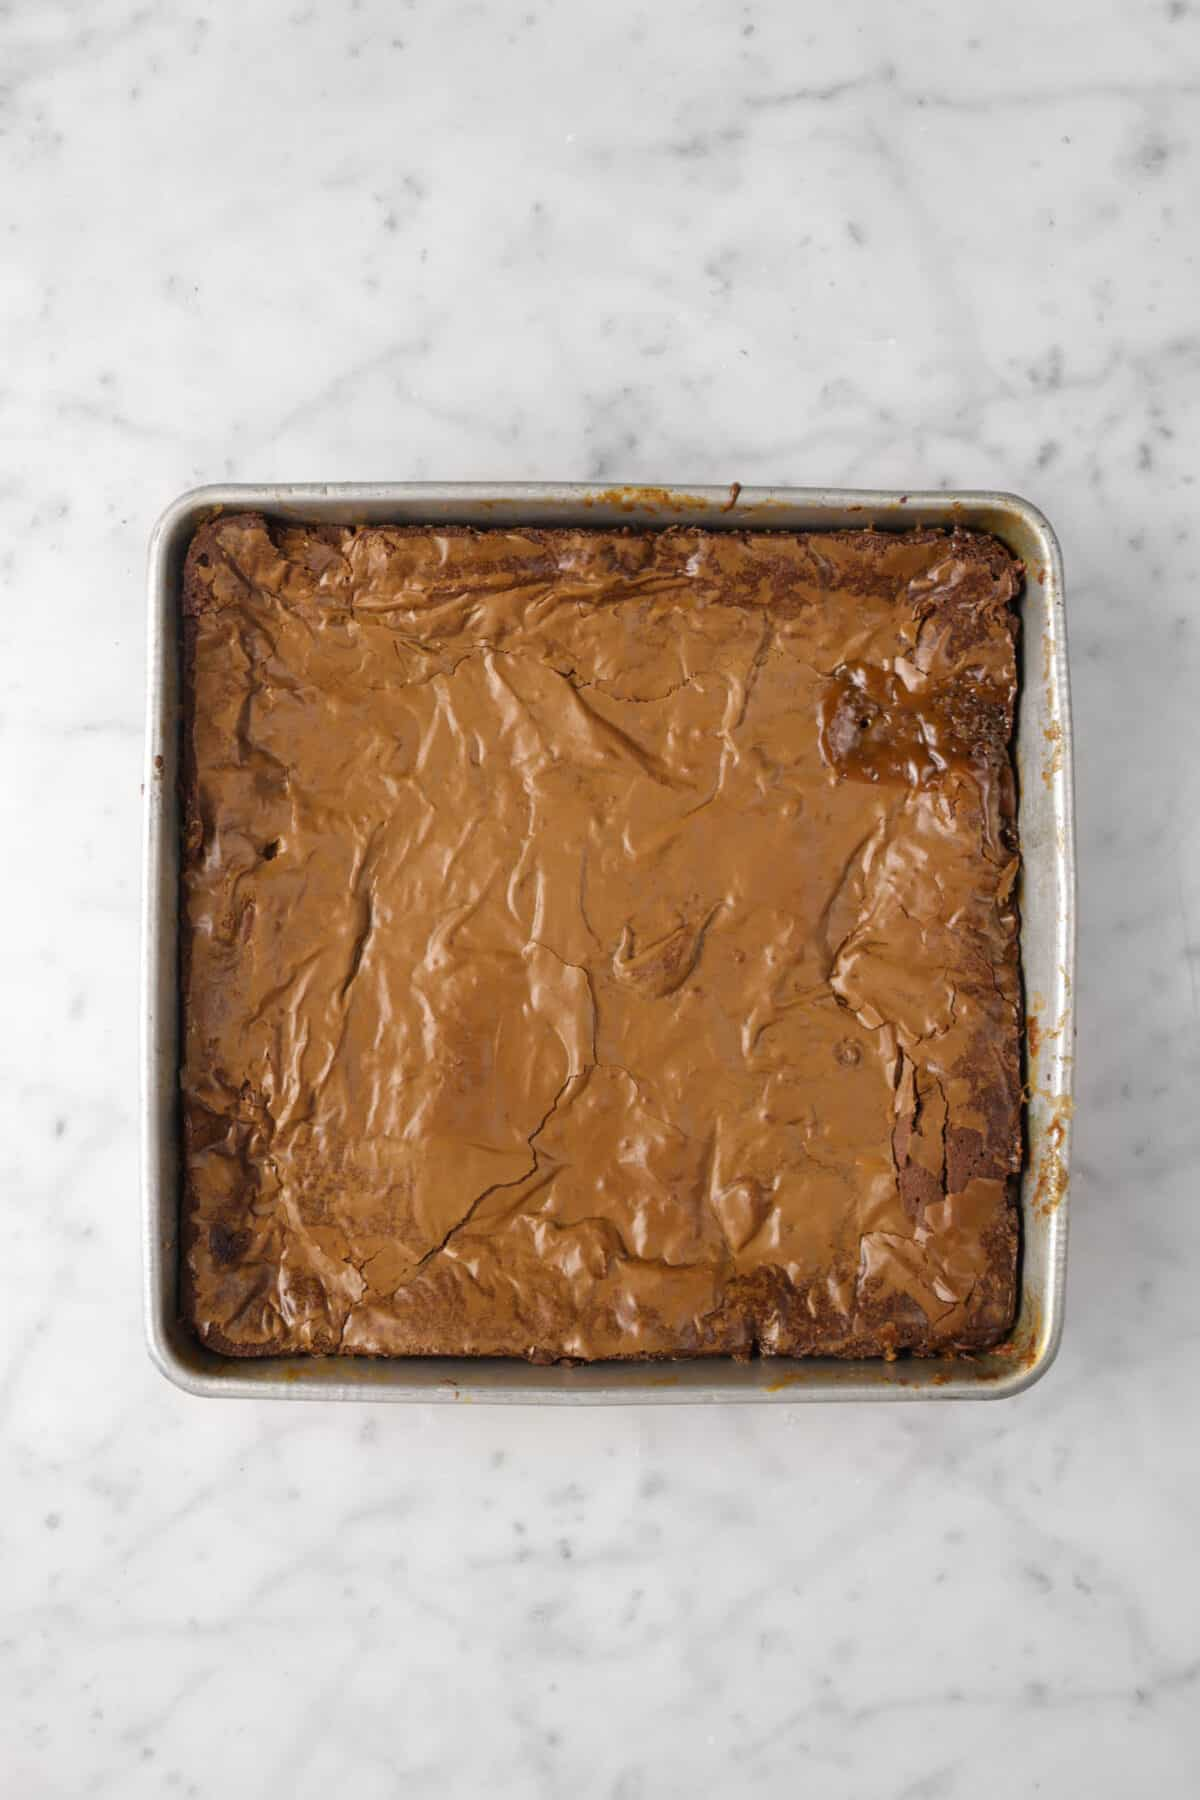 brownies baked in a square pan